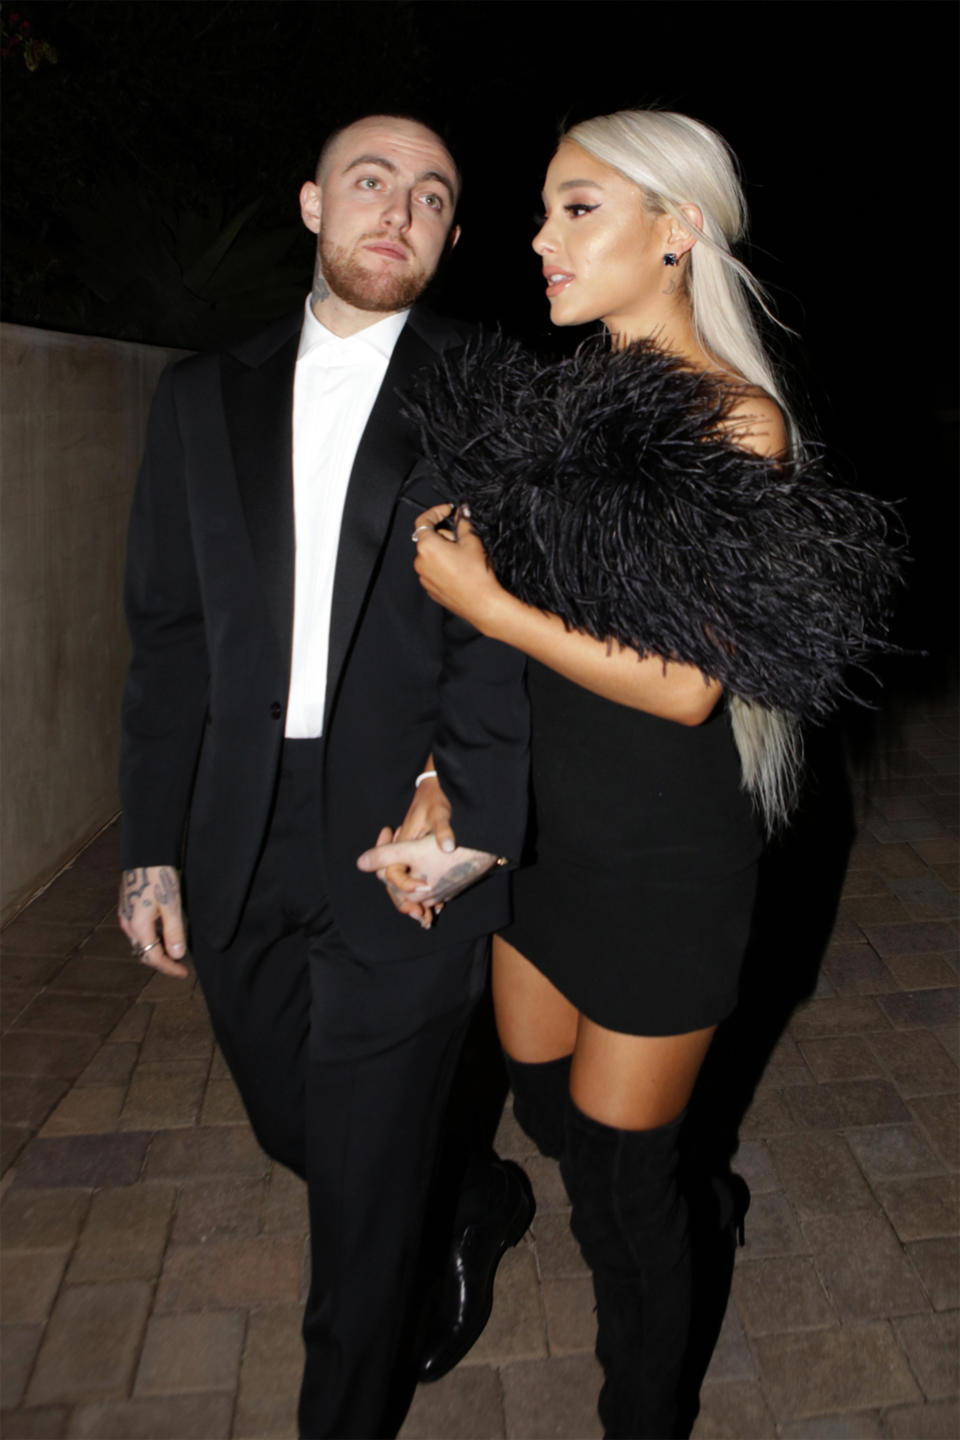 Ariana broke off her engagement to Pete after the tragic passing of her ex-boyfriend Mac Miller in September 2018. Photo: Getty